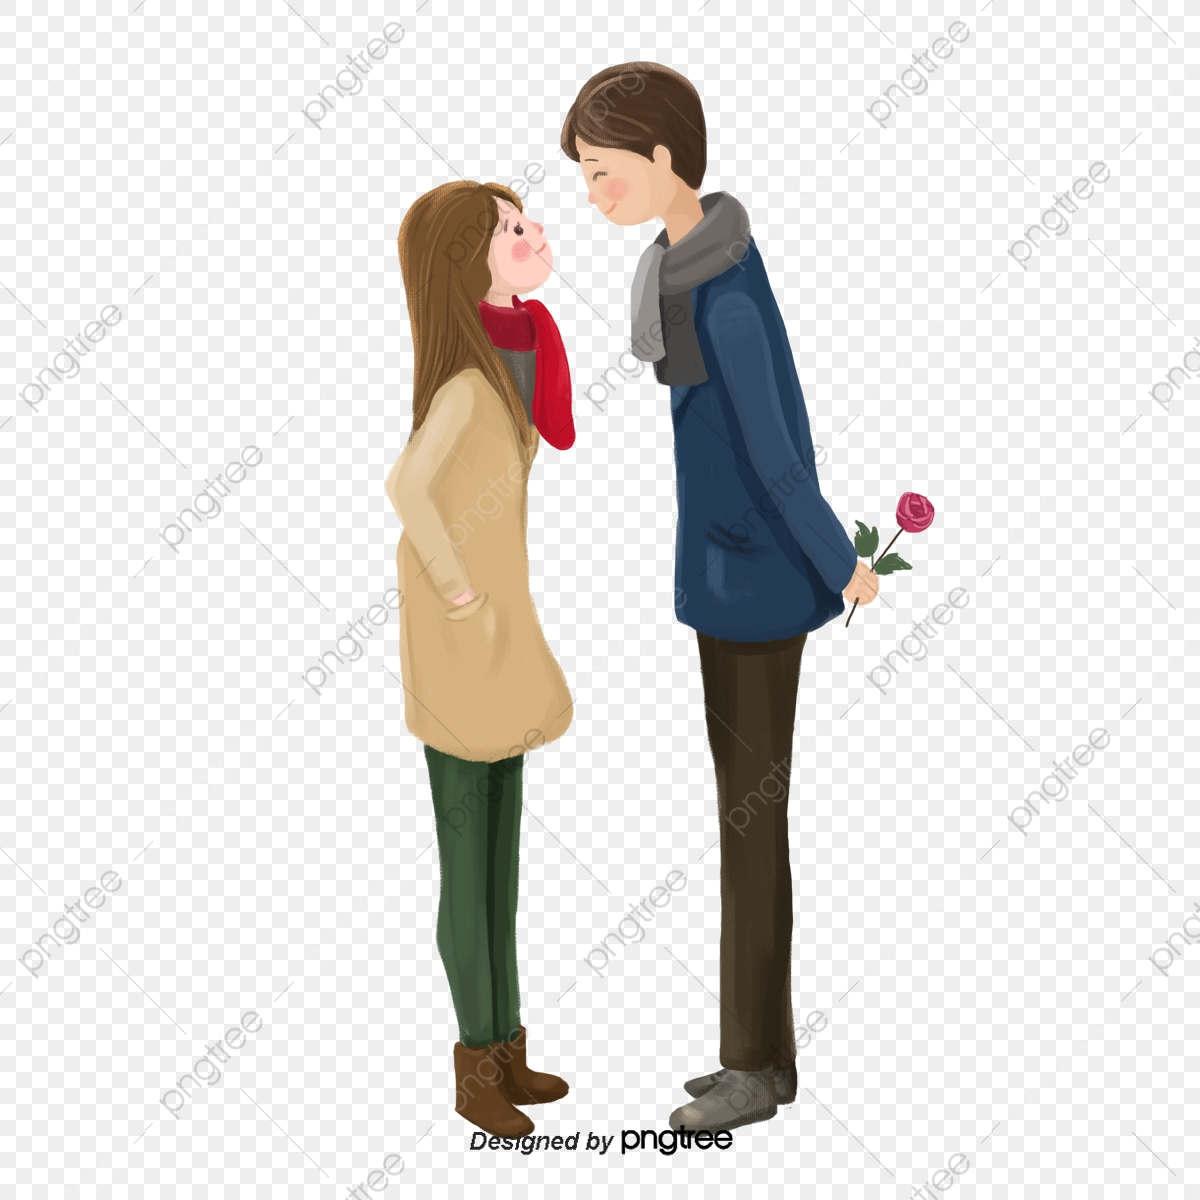 Dating clipart free